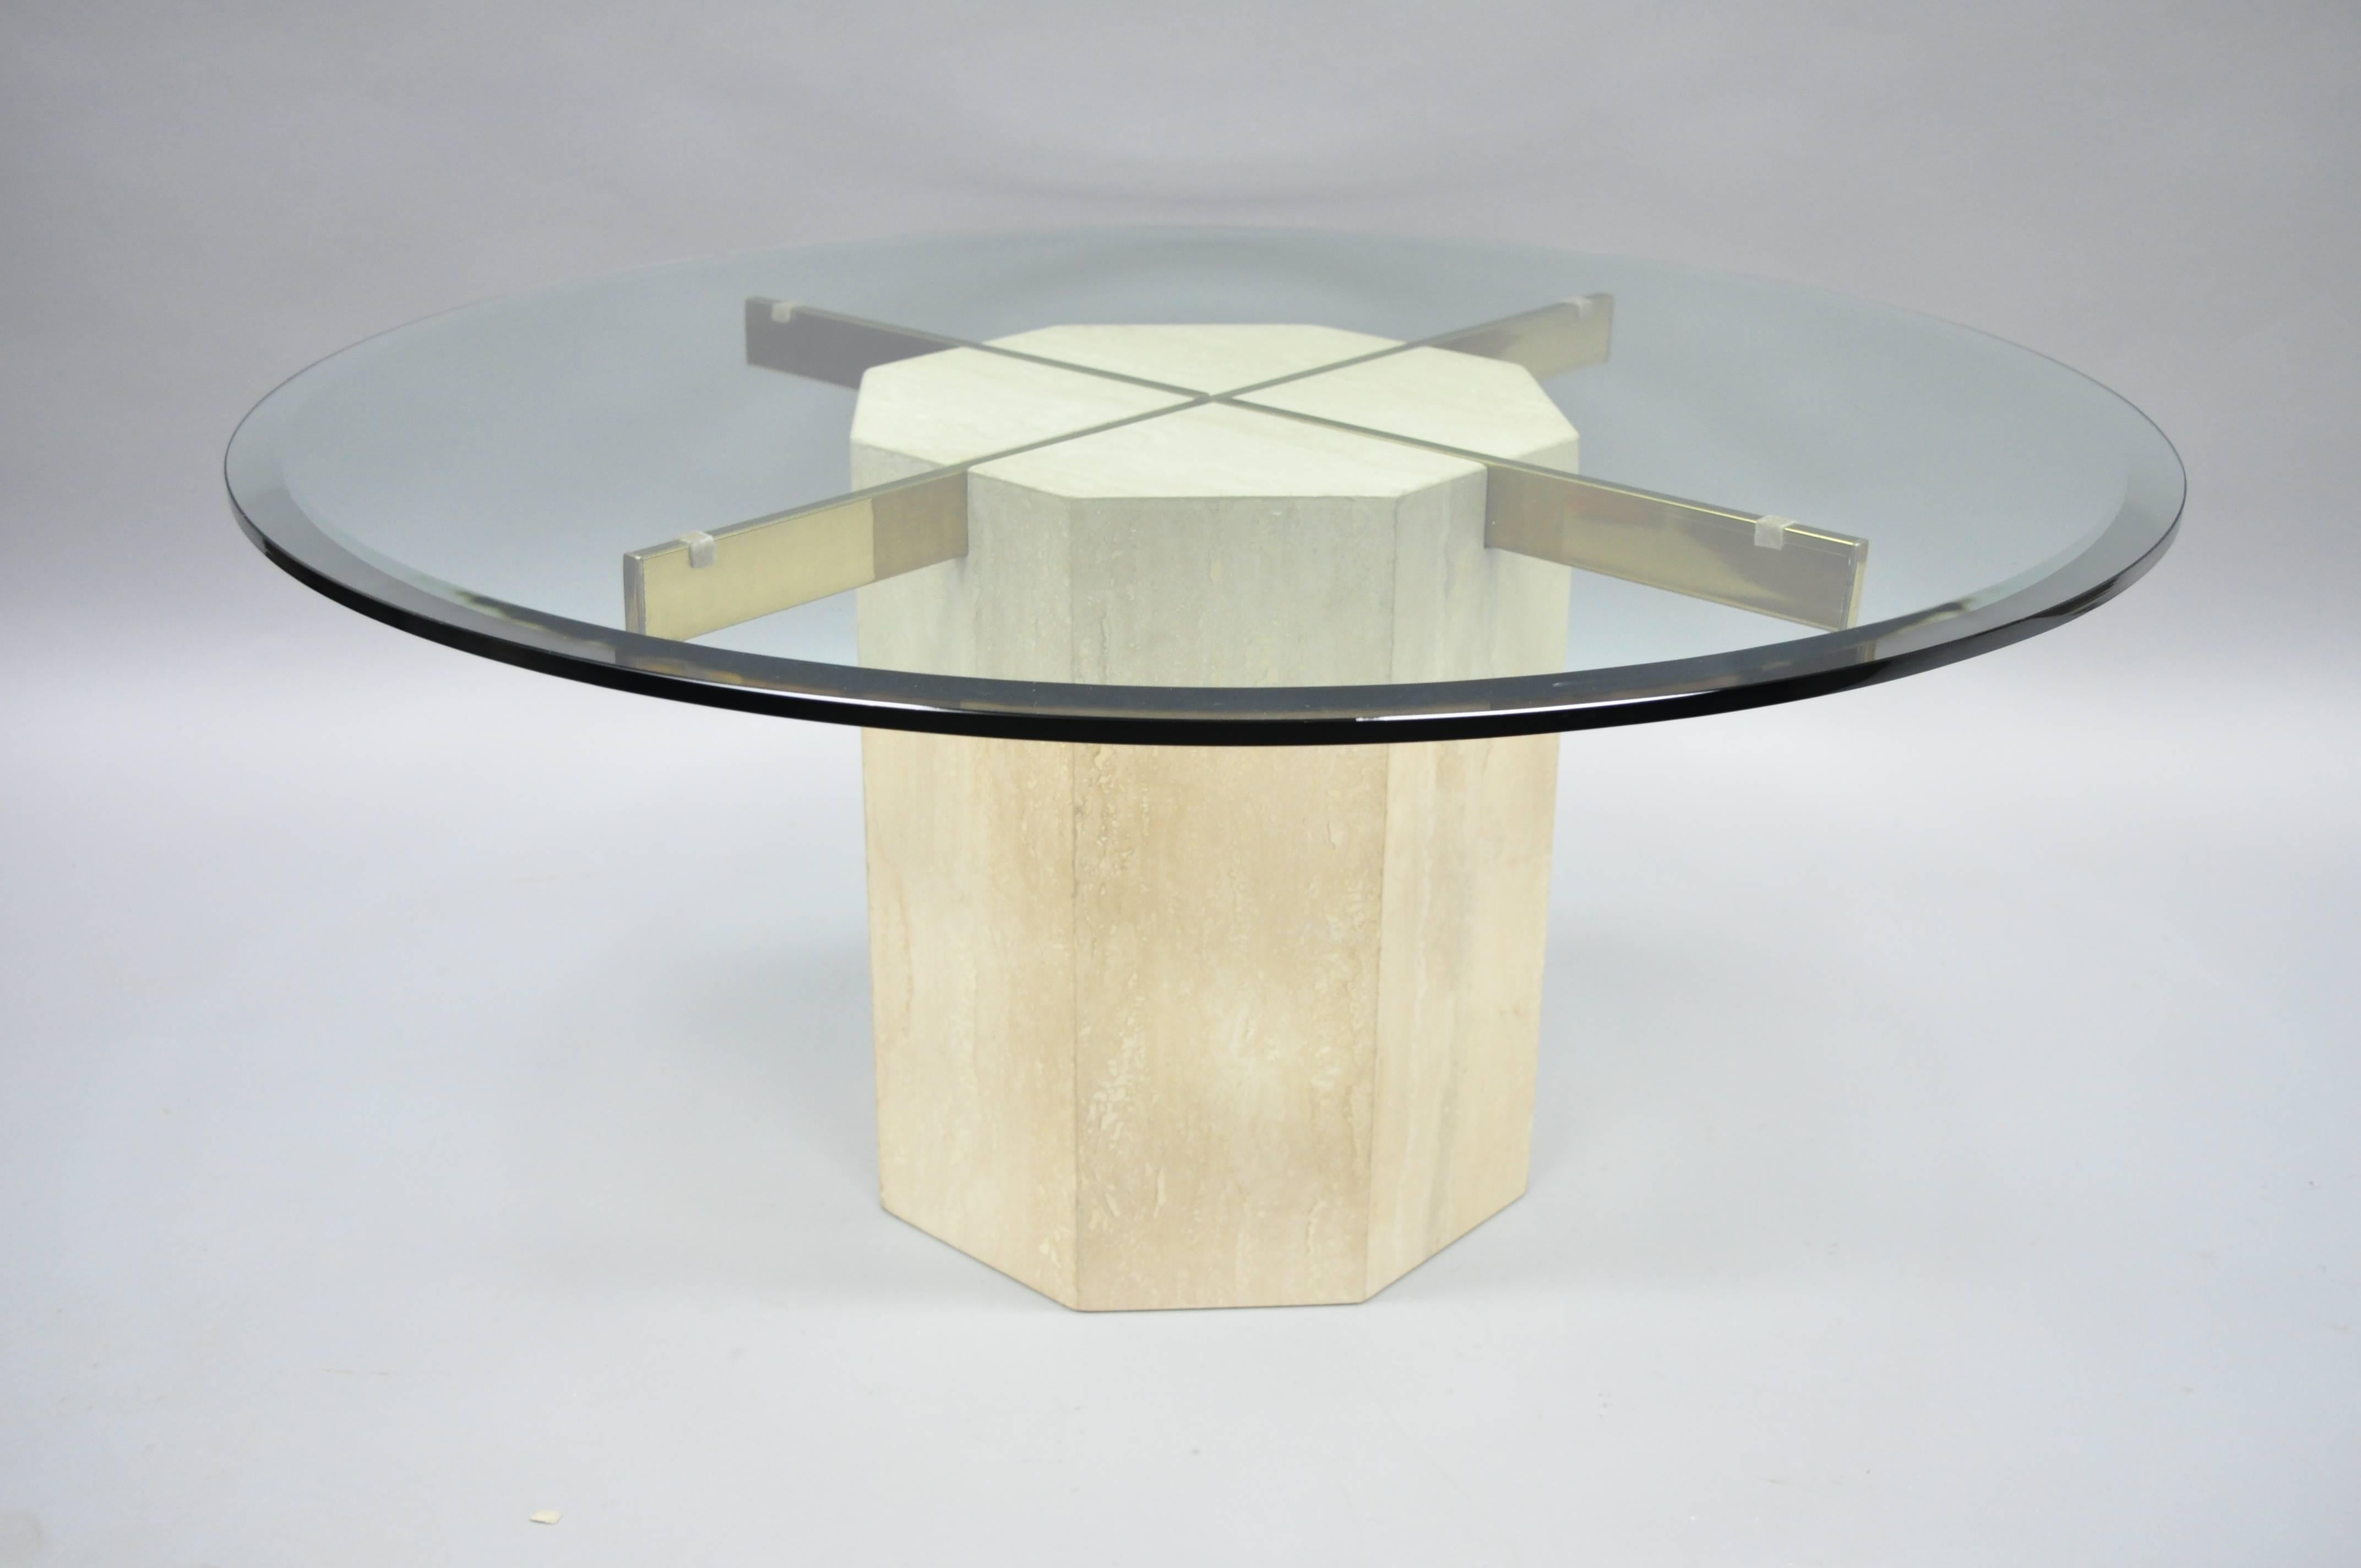 Mid Century Modern Travertine And Brass Round Glass Top Coffee Table By  Artedi For Sale